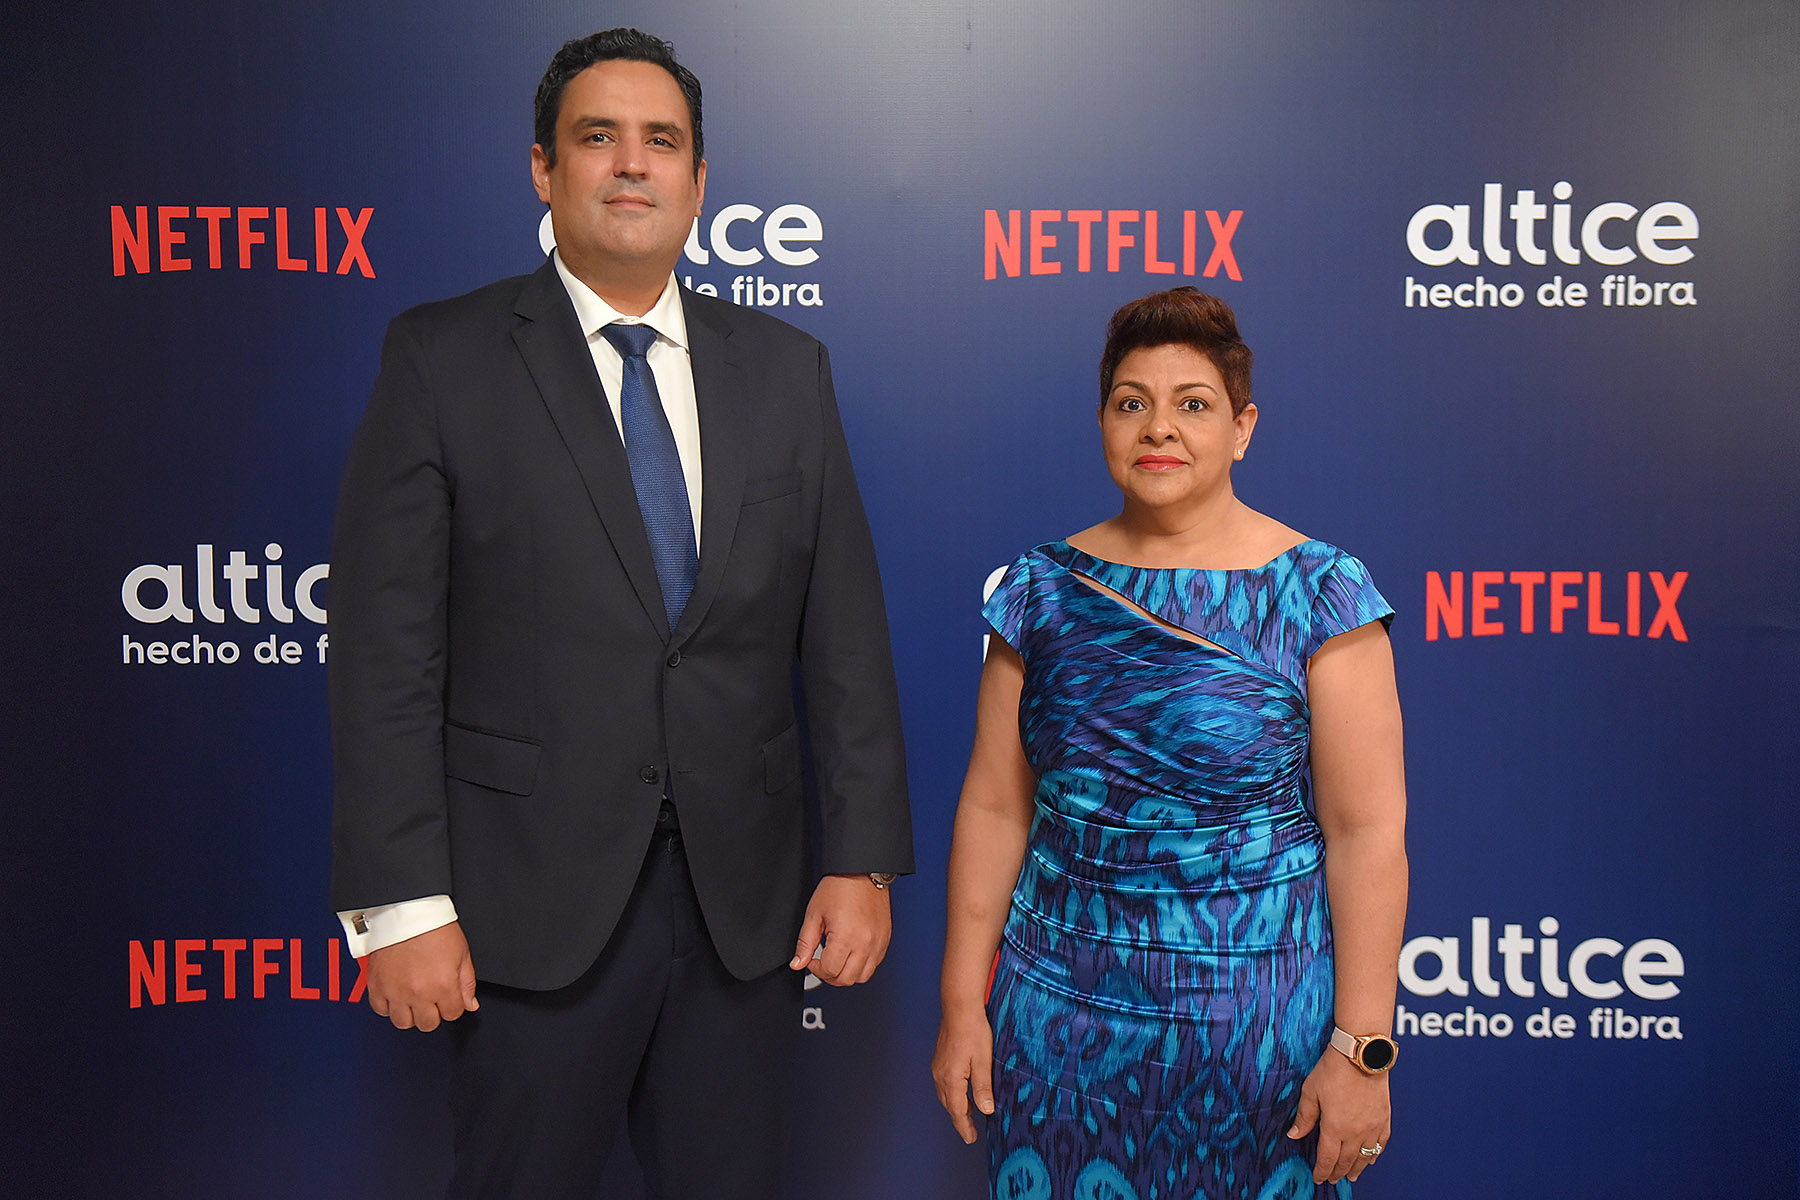 Video | Altice incluye acceso gratuito a Netflix en sus planes Triple Play